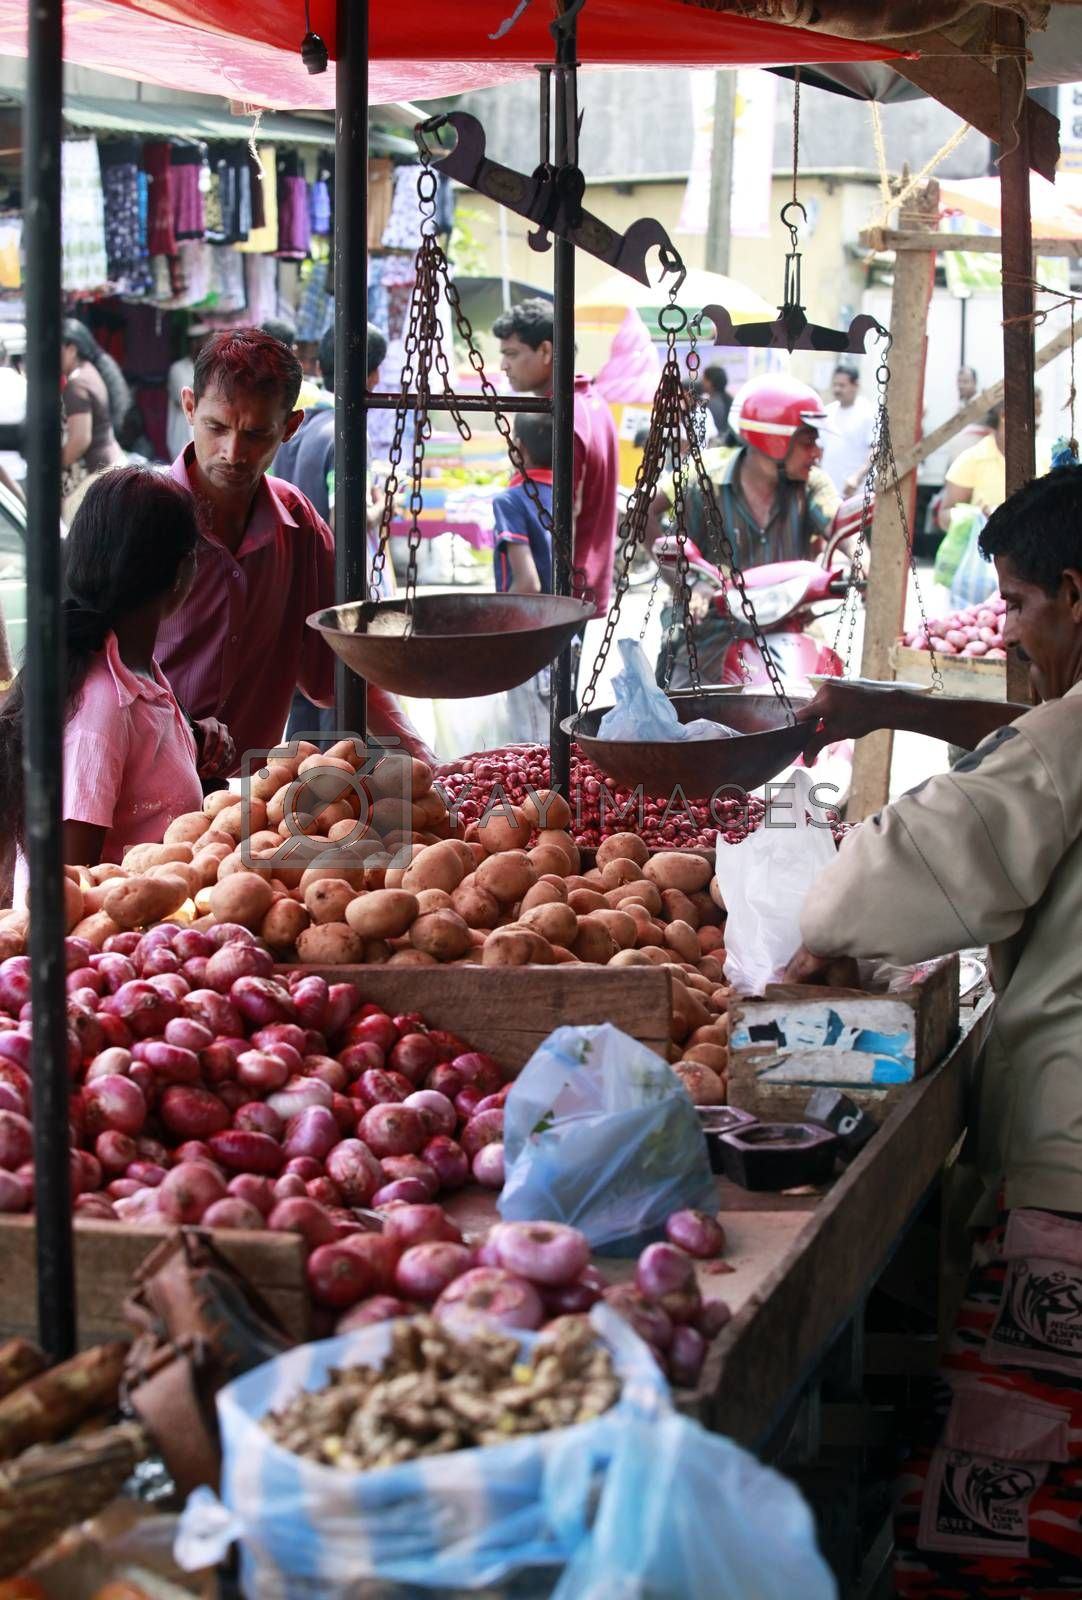 Colombo, Sri Lanka - April 9, 2011: Sri Lankan people on the fruit market in the Pettah district. The Pettah neighborhood is famous for its open air bazaars and markets